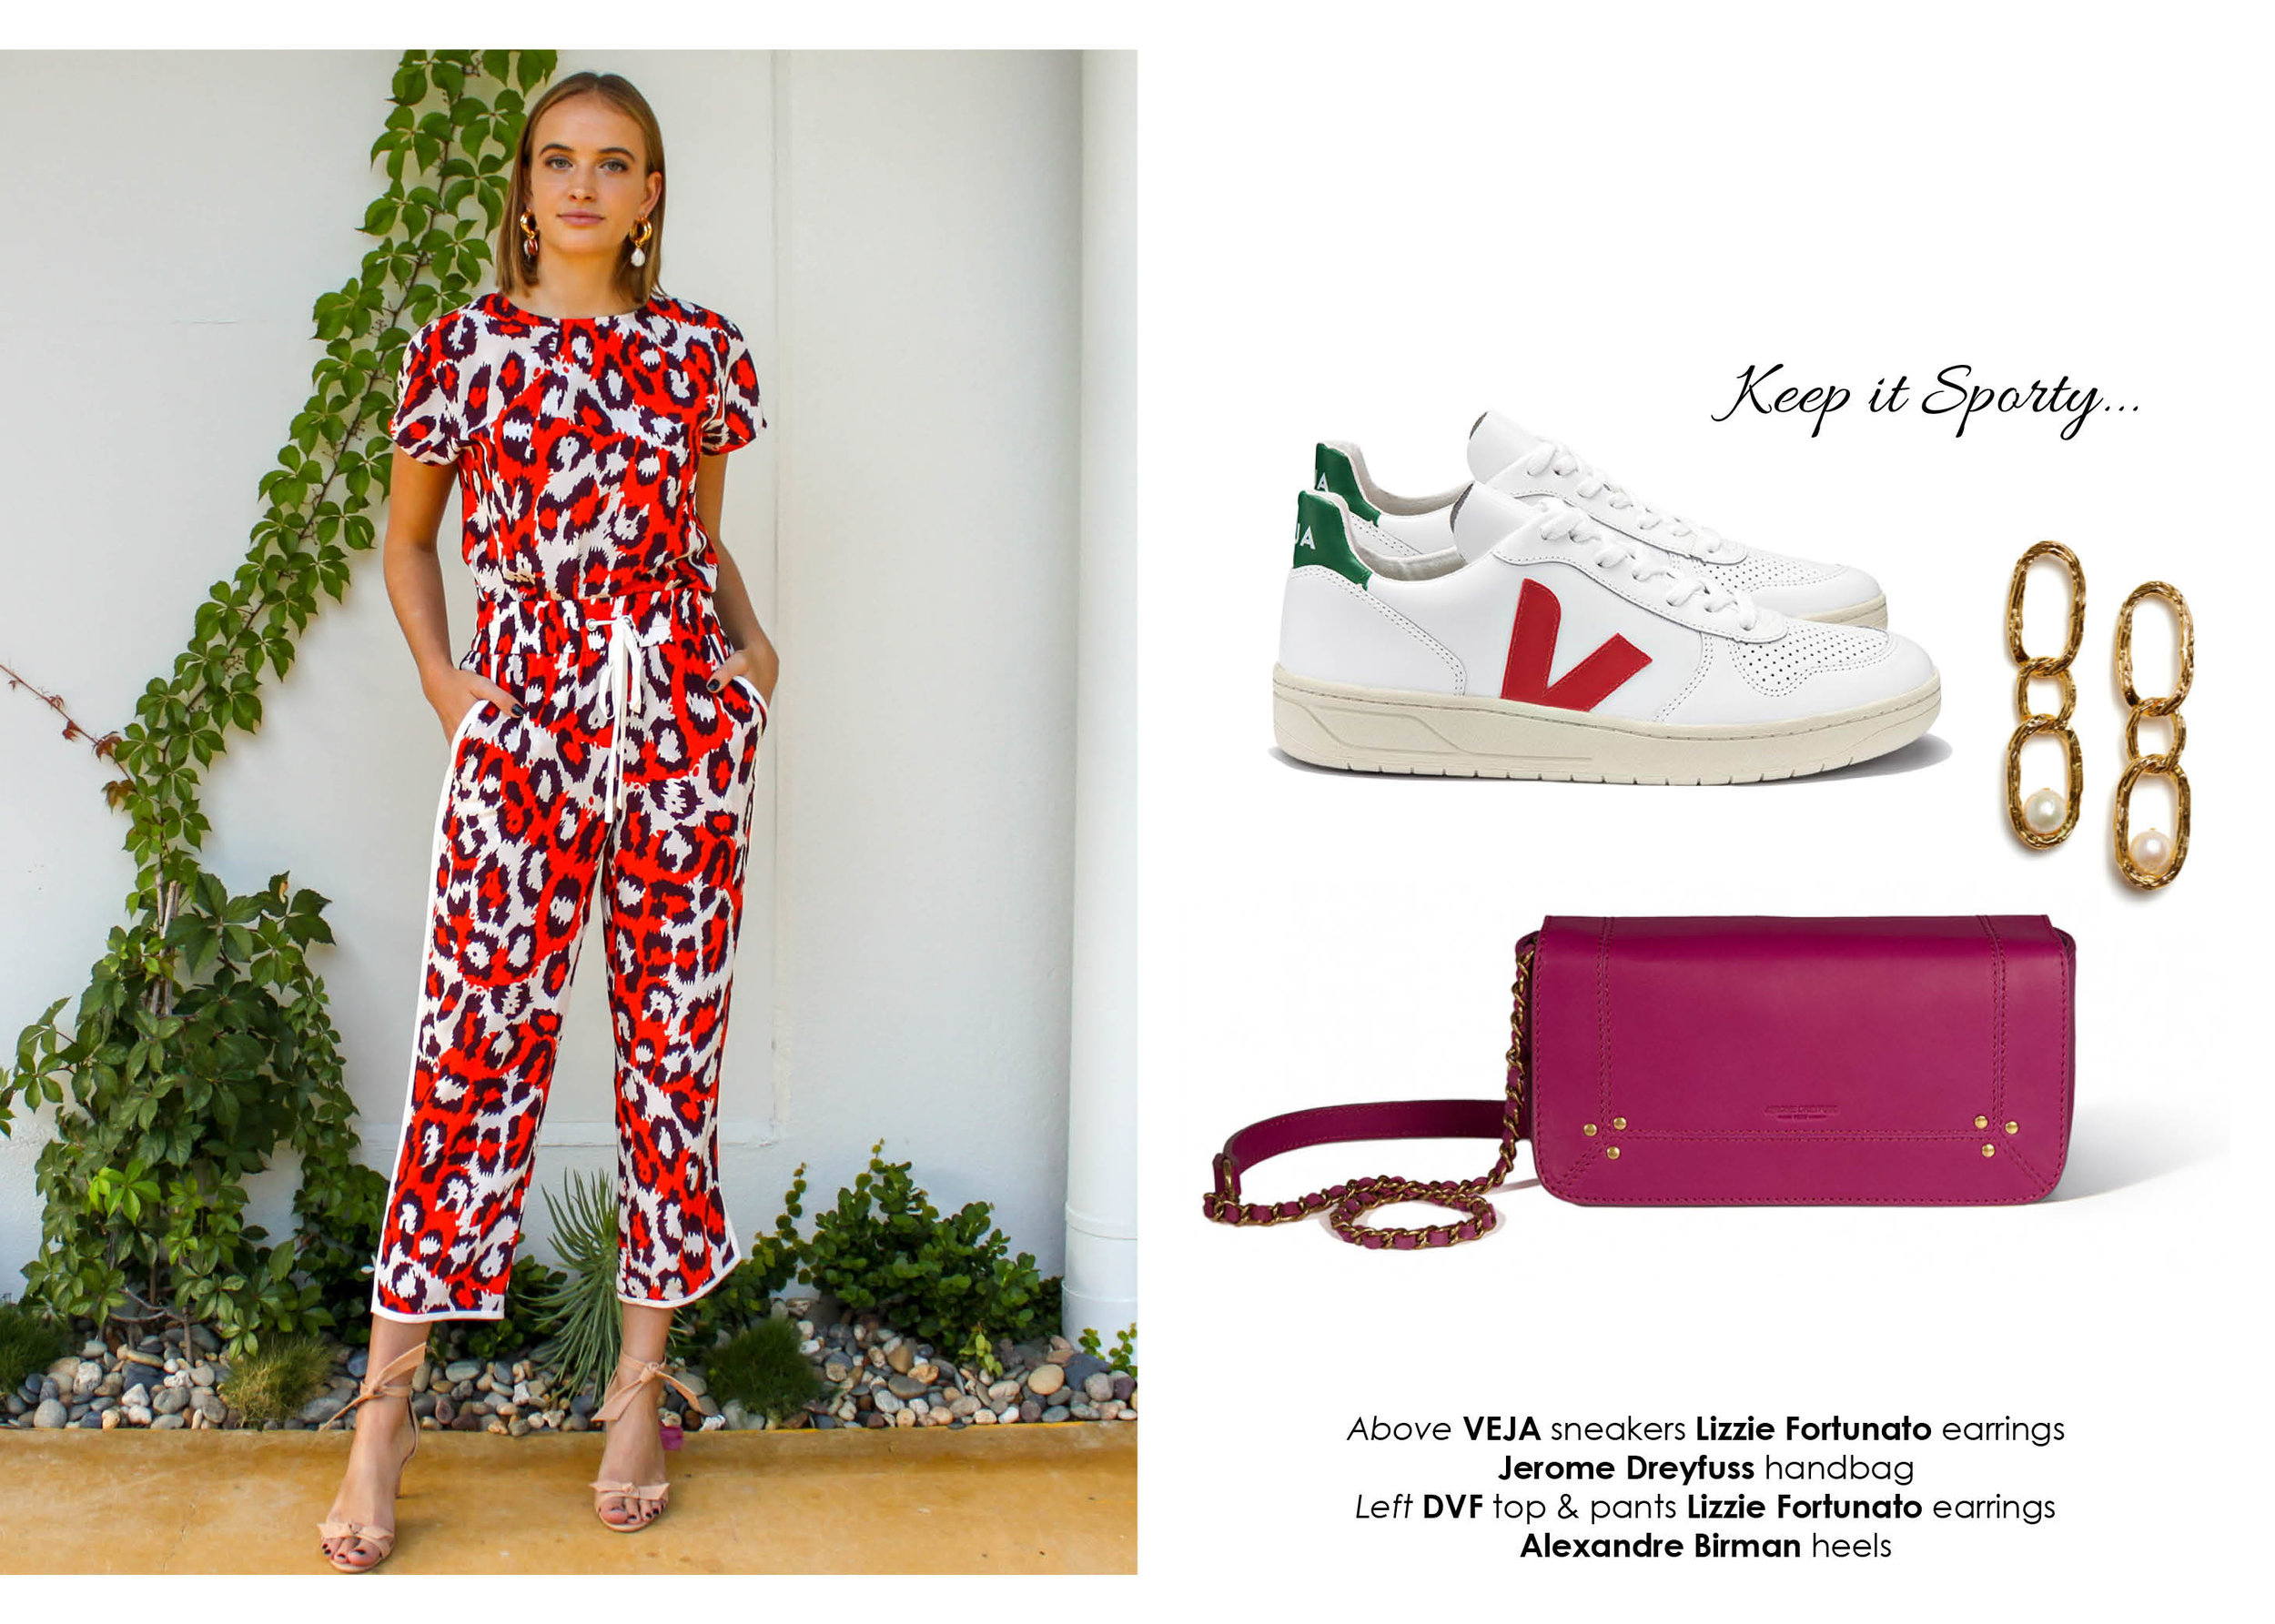 DVF-May19-newsletter-layout-11.jpg